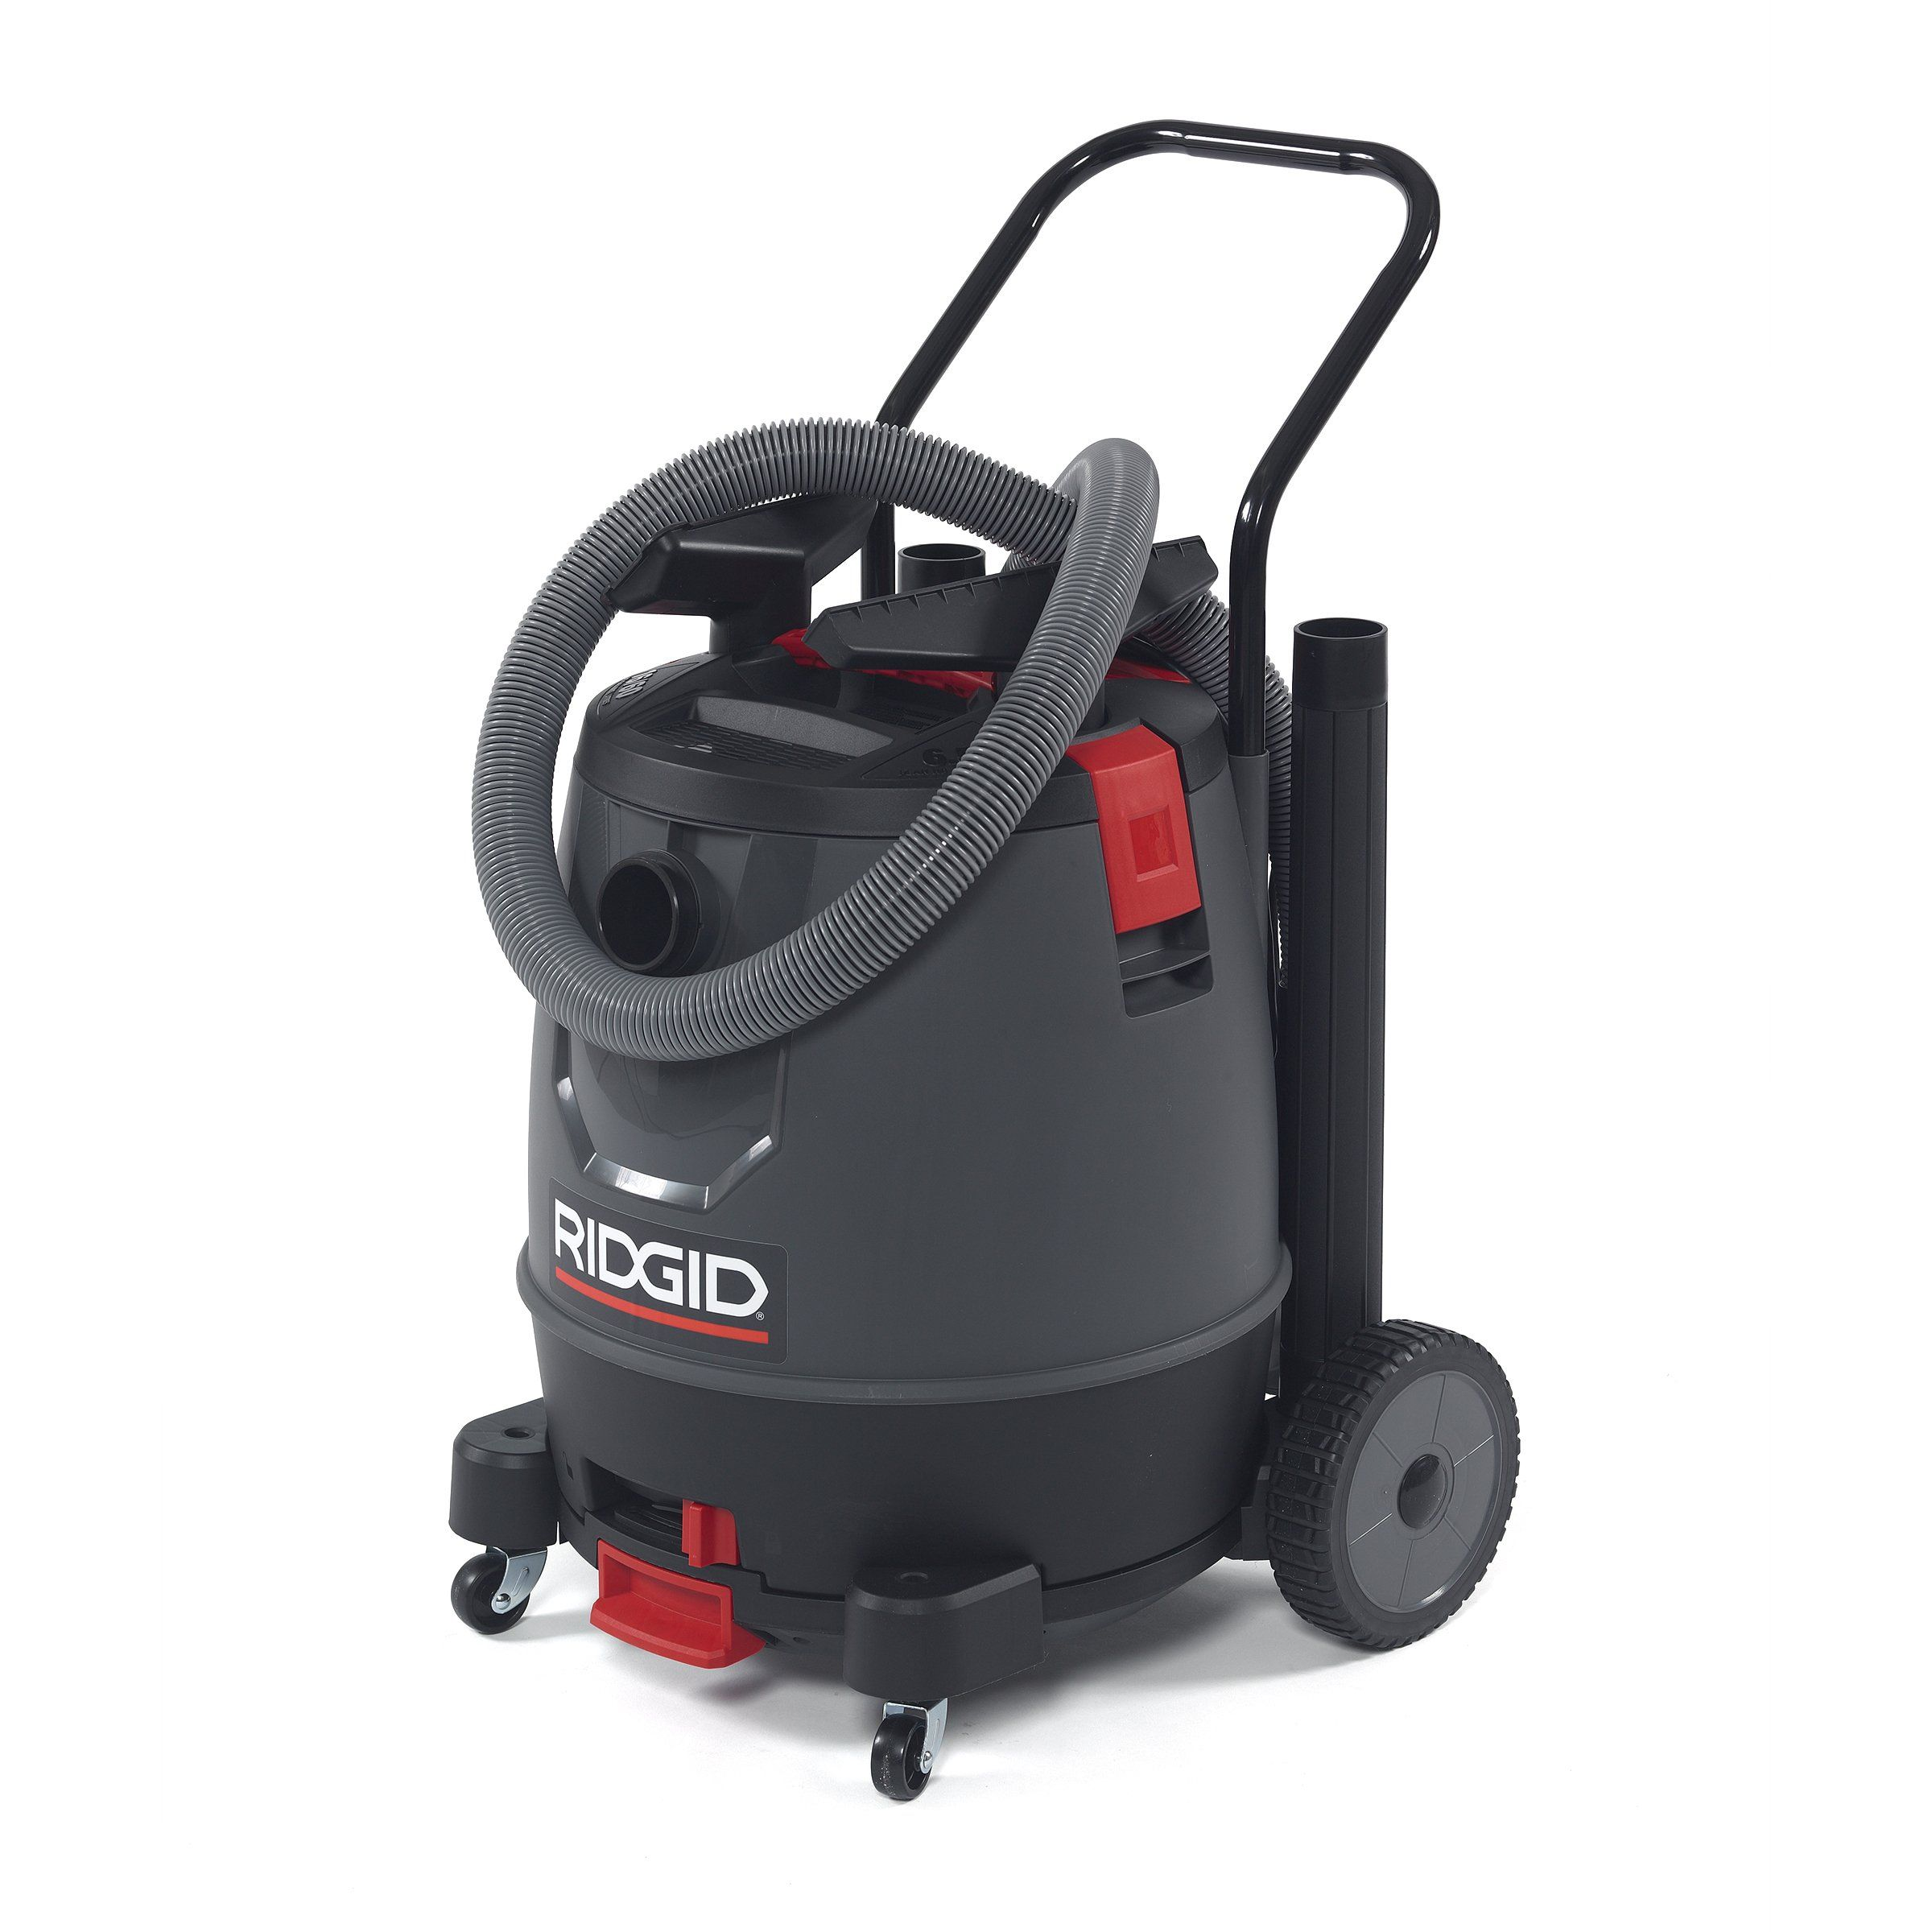 Ridgid 50338 1650rv Motoronbottom Wet Dry Vacuum 16 Gal Red You Could Get More Details By Clicking The Picture This Wet Dry Vacuum Wet And Dry Power Tools